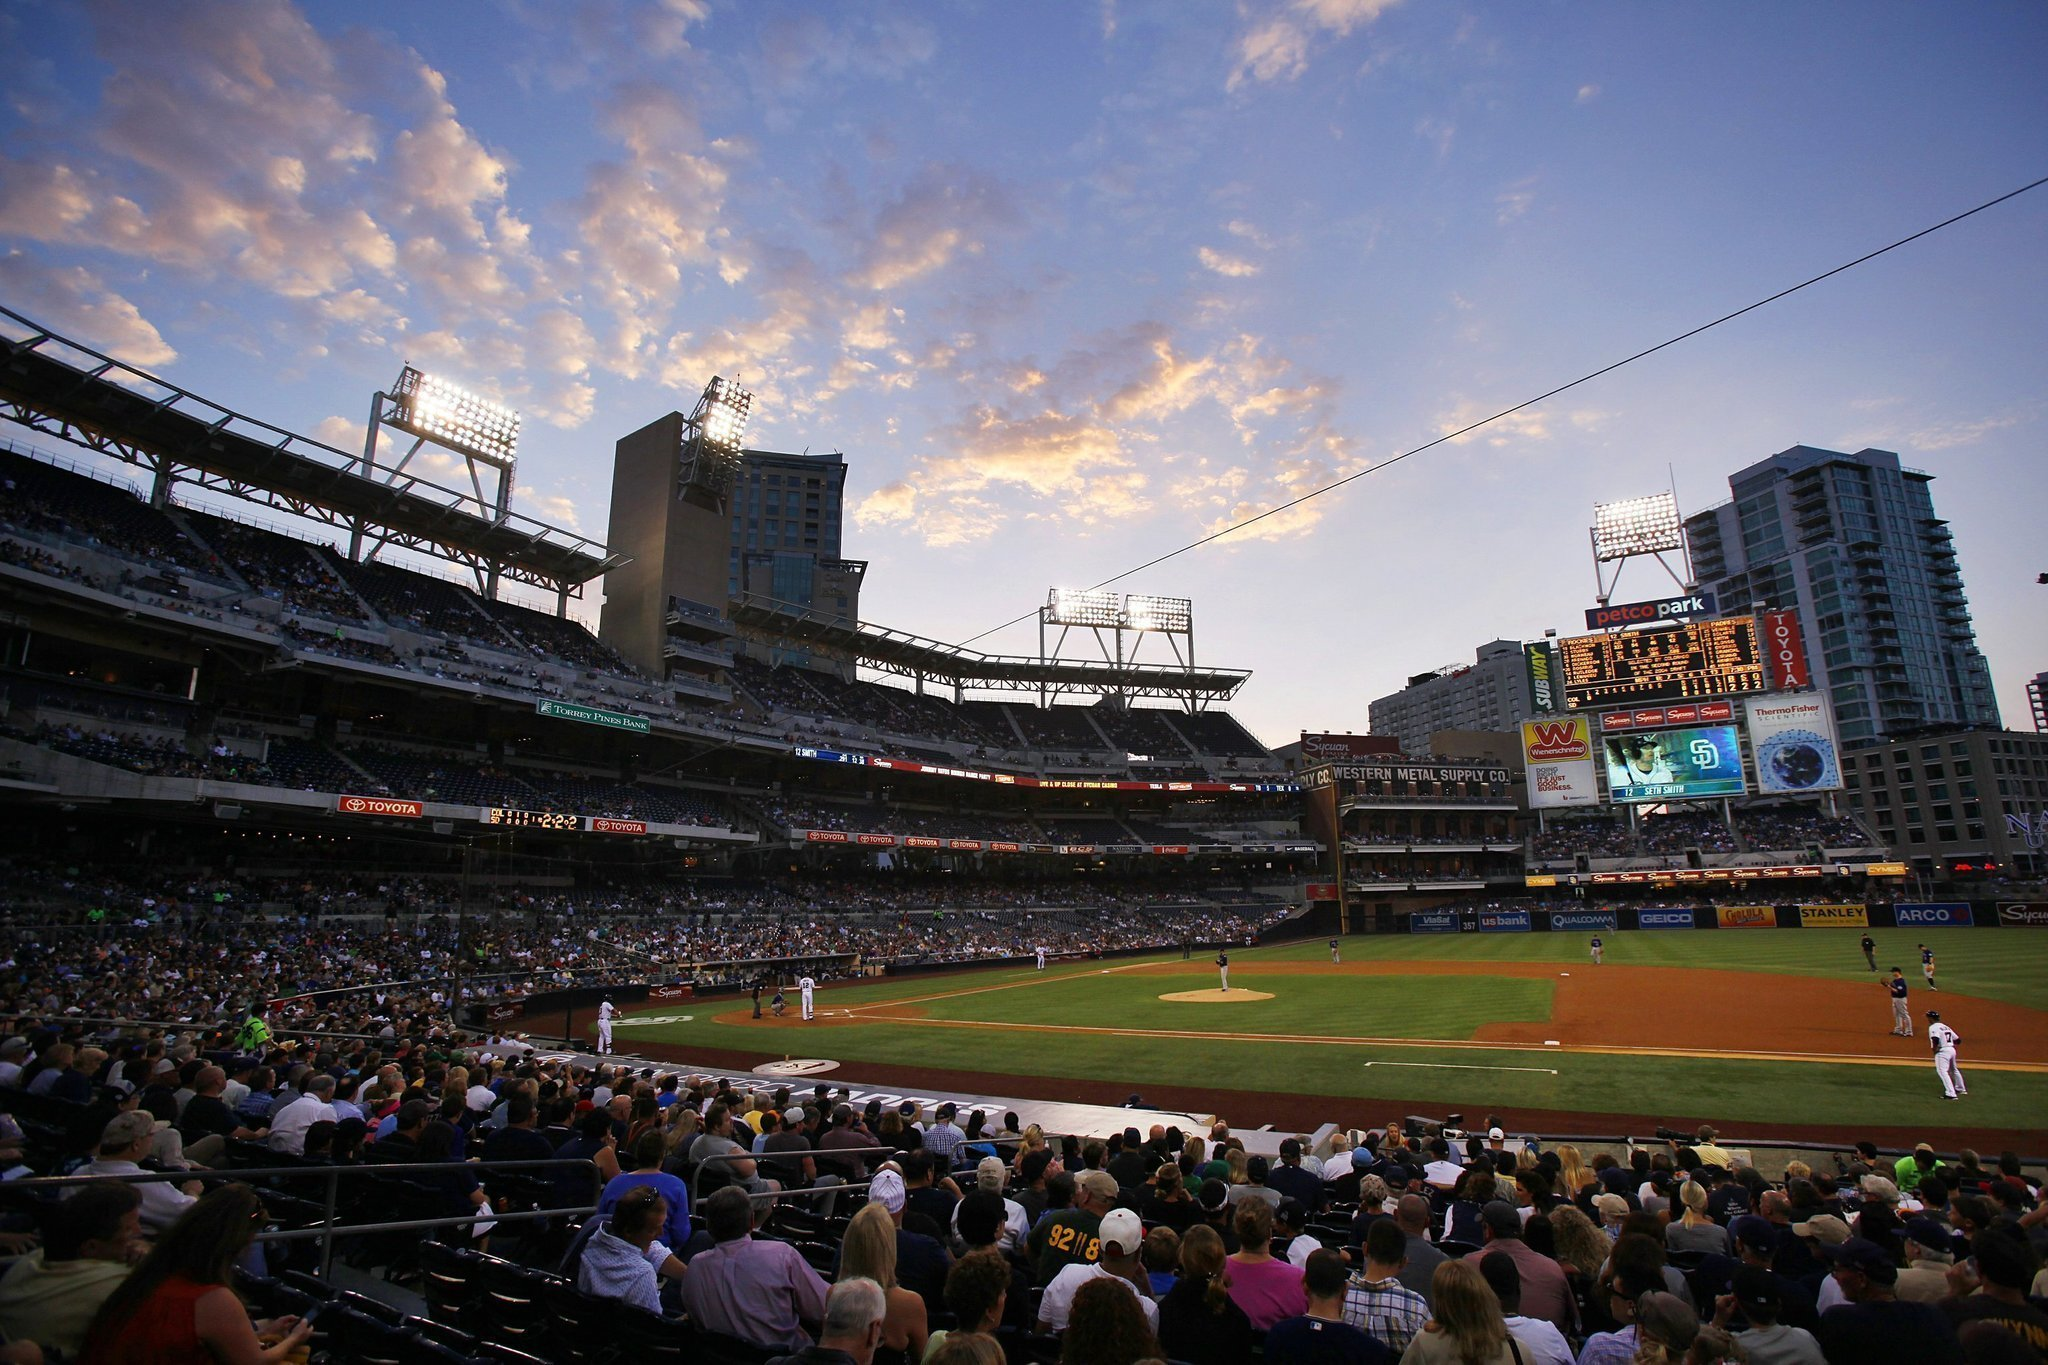 Can I buy official Padres Merchandise before a game in PETCO Park?